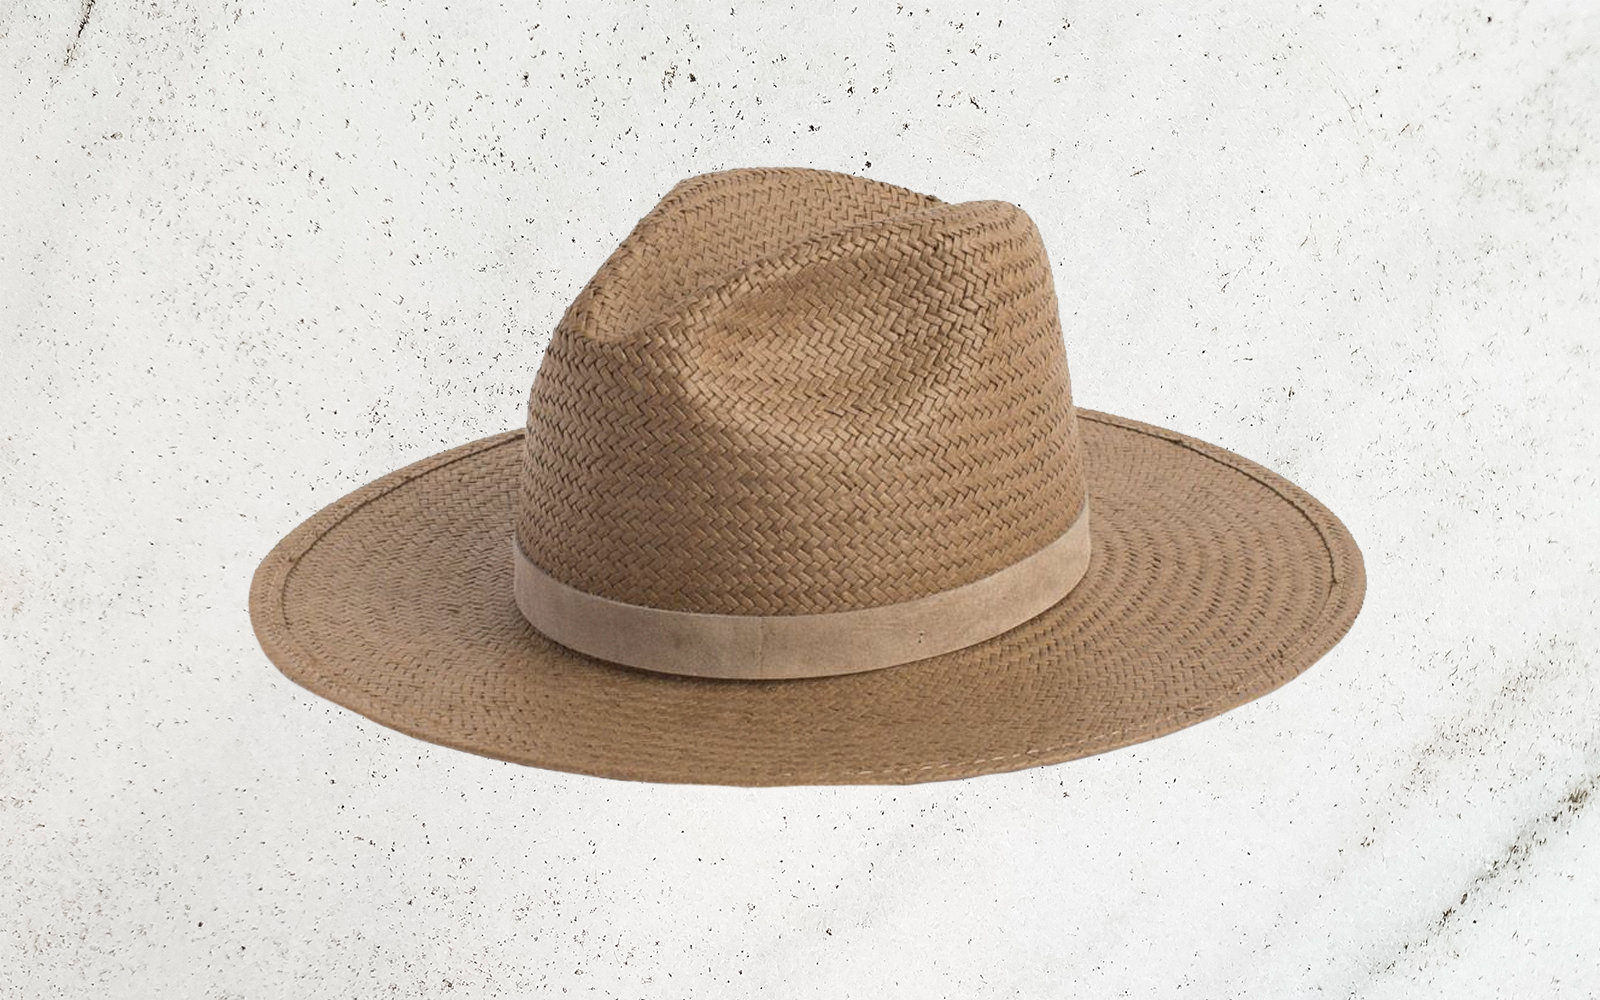 Janessa Leone Packable Straw Hat